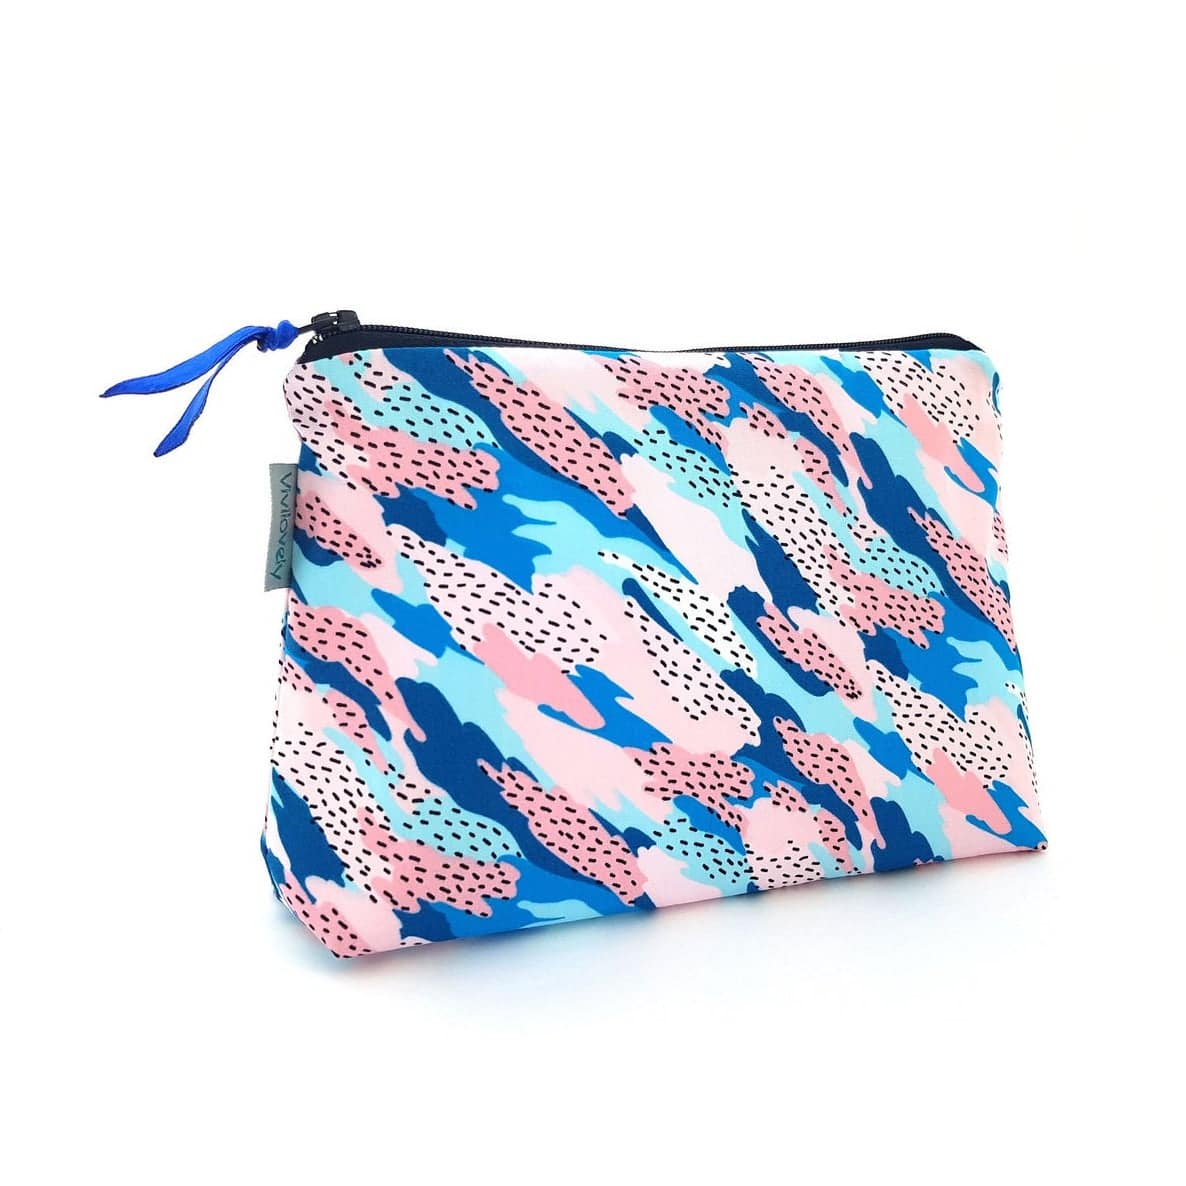 Etsy Gift Guide - Terrazzo Cosmetic Bag